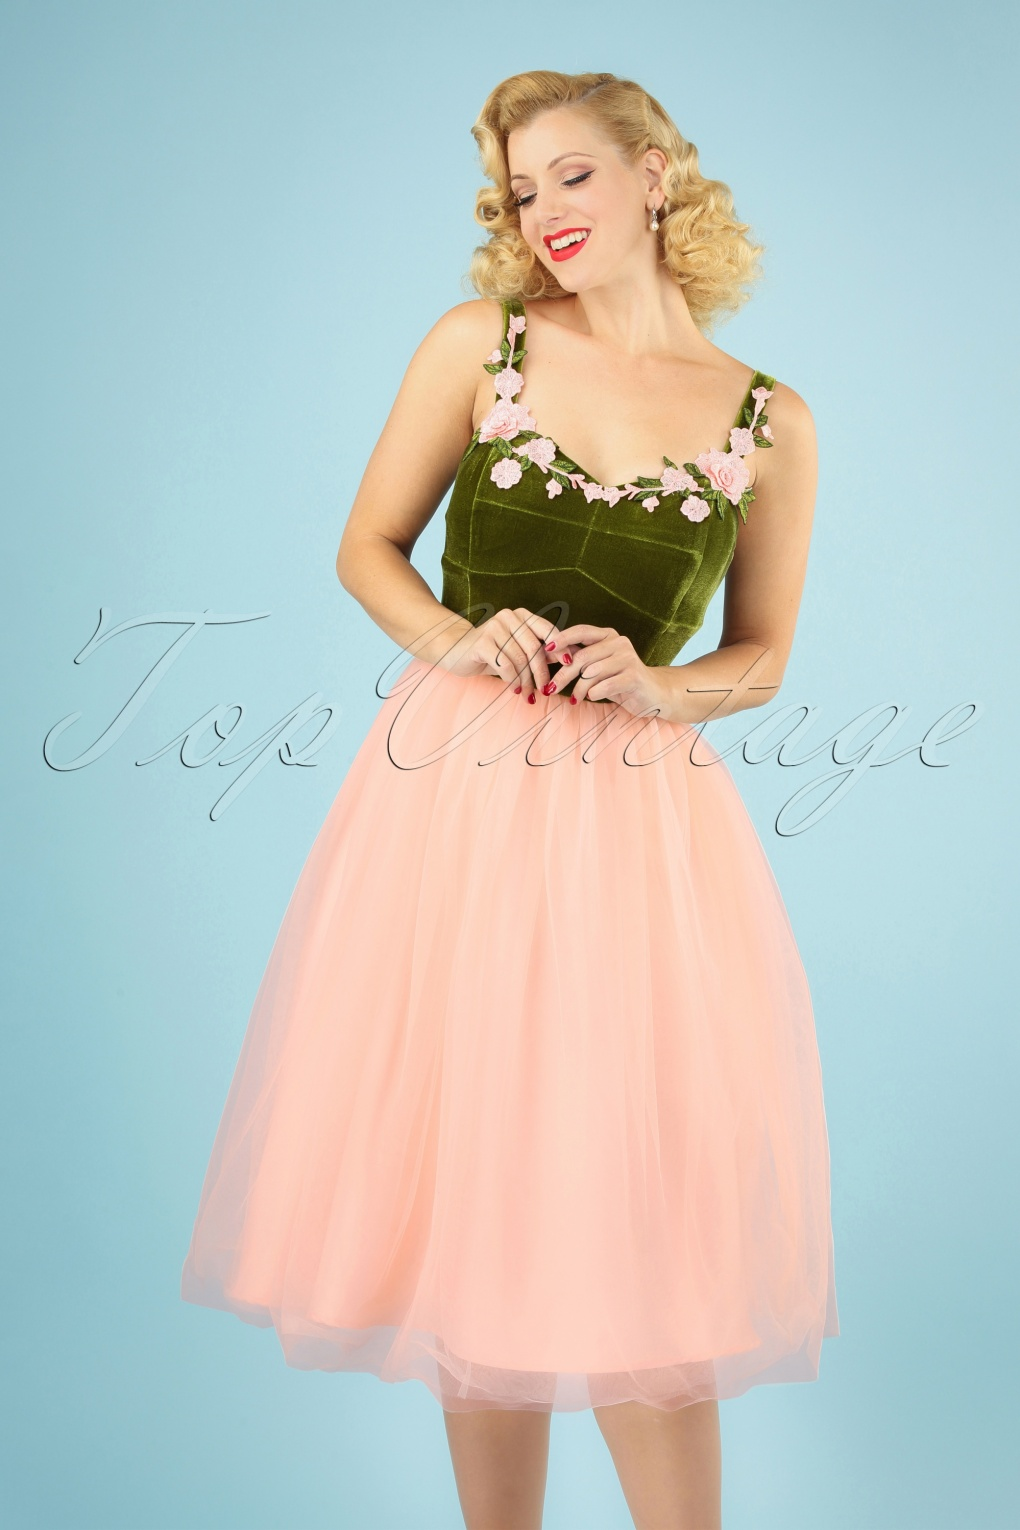 Vintage New Years Eve Dresses – Vintage Inspired Styles 50s Josie Occasion Swing Dress in Pink and Green £92.32 AT vintagedancer.com